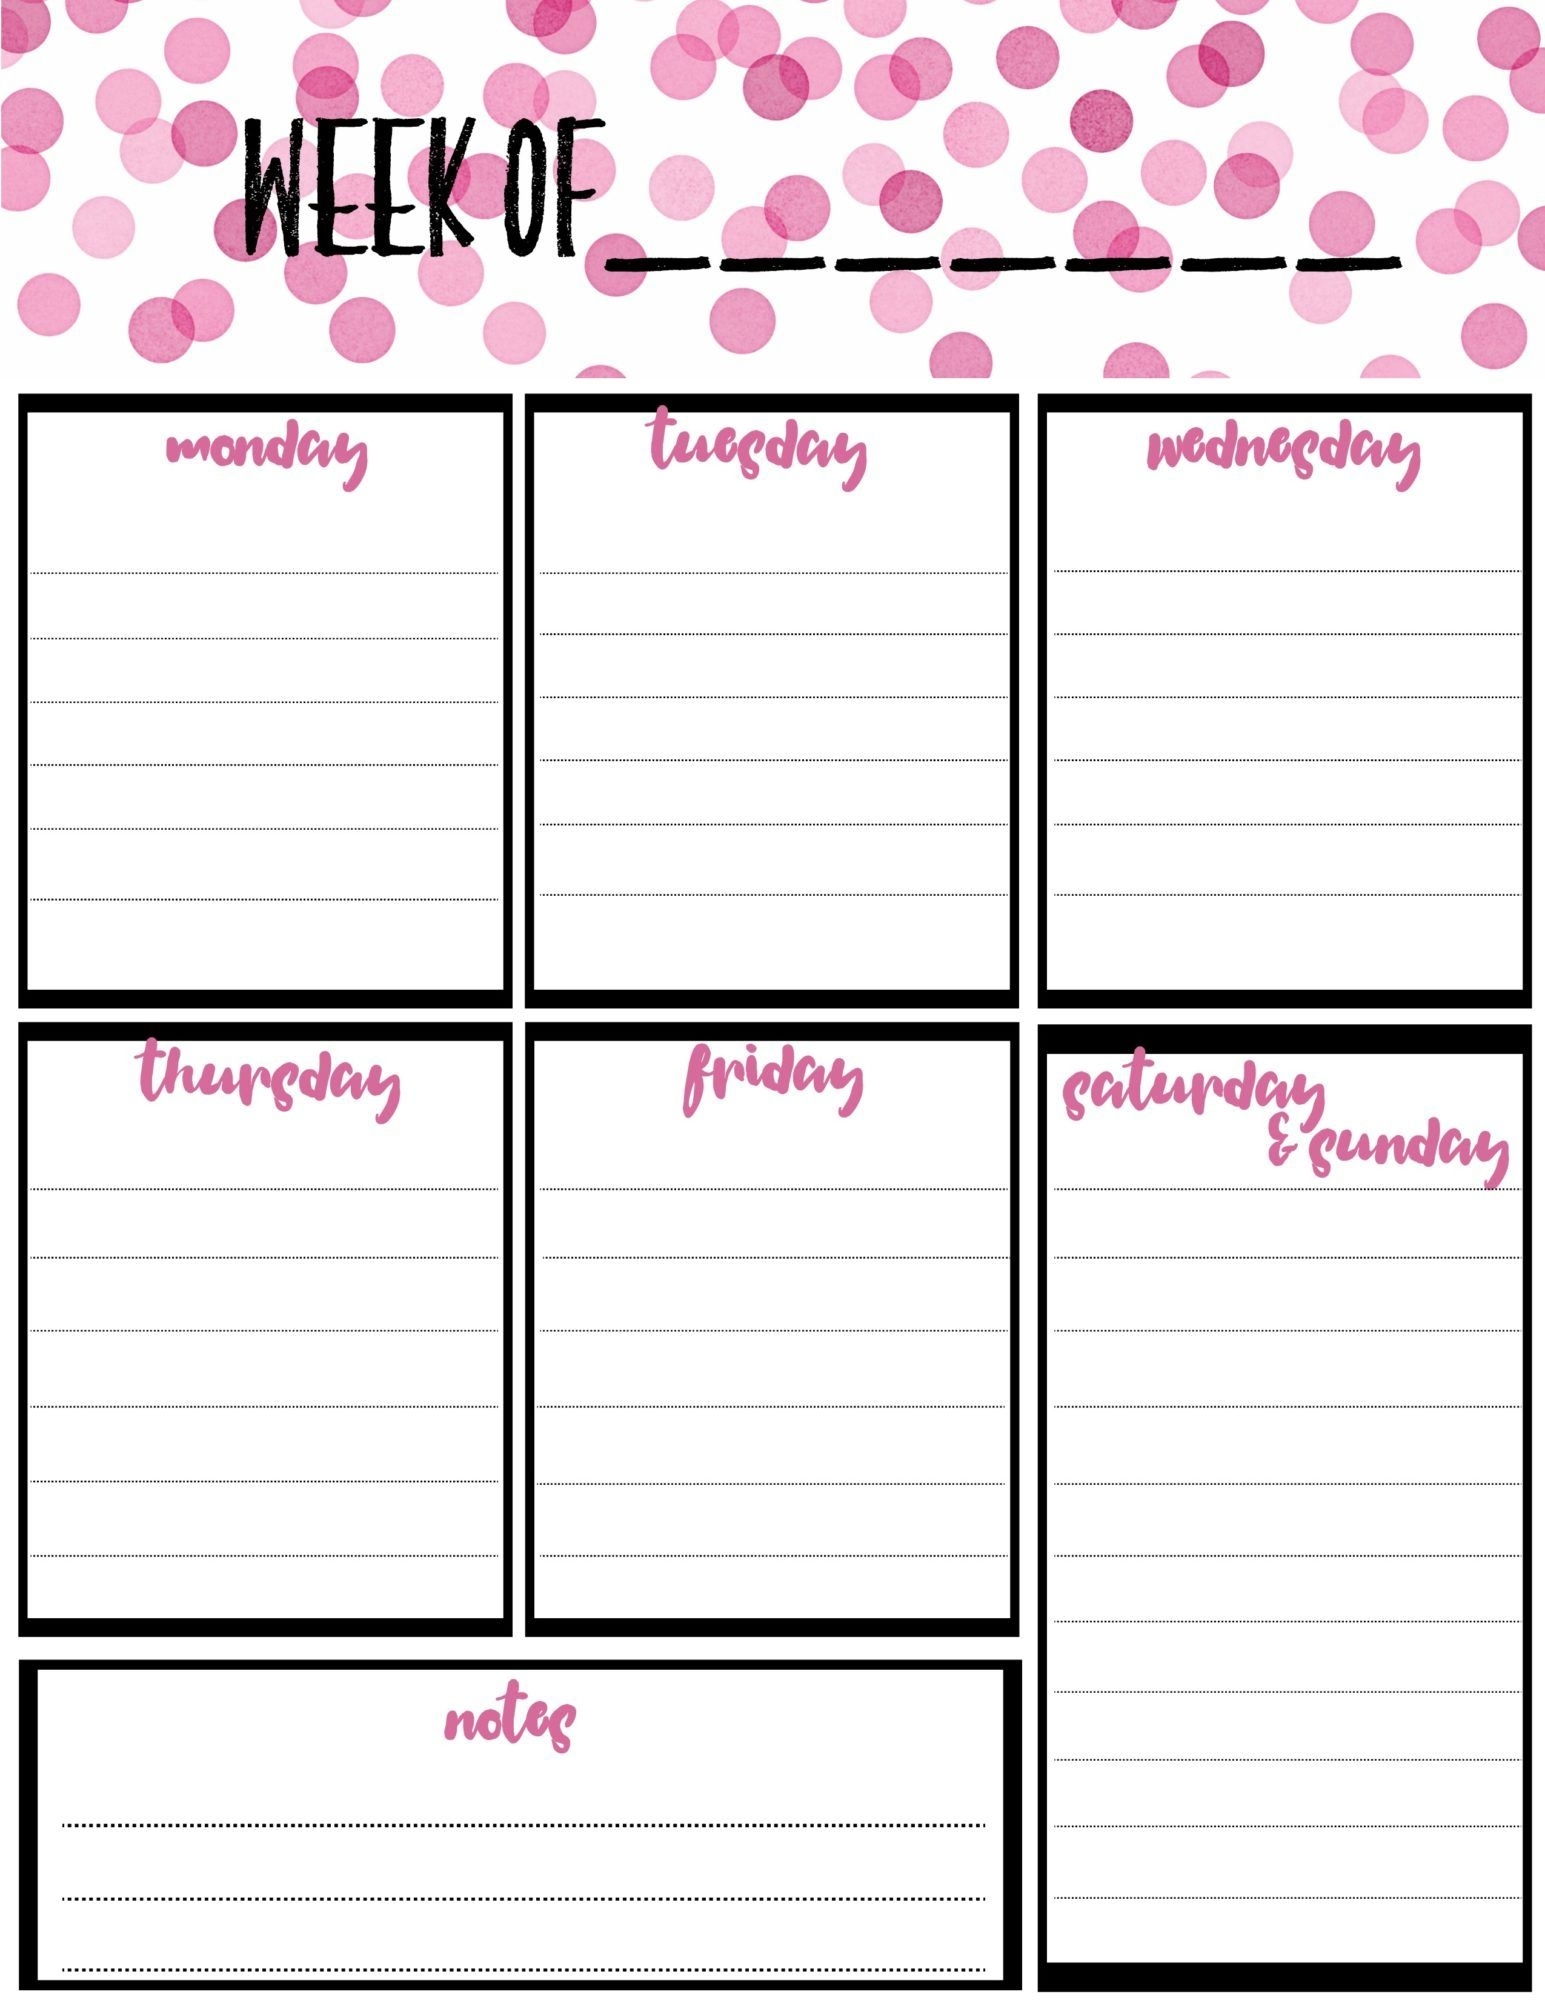 Free Weekly Calendar Planner Printable: Full And Half Size